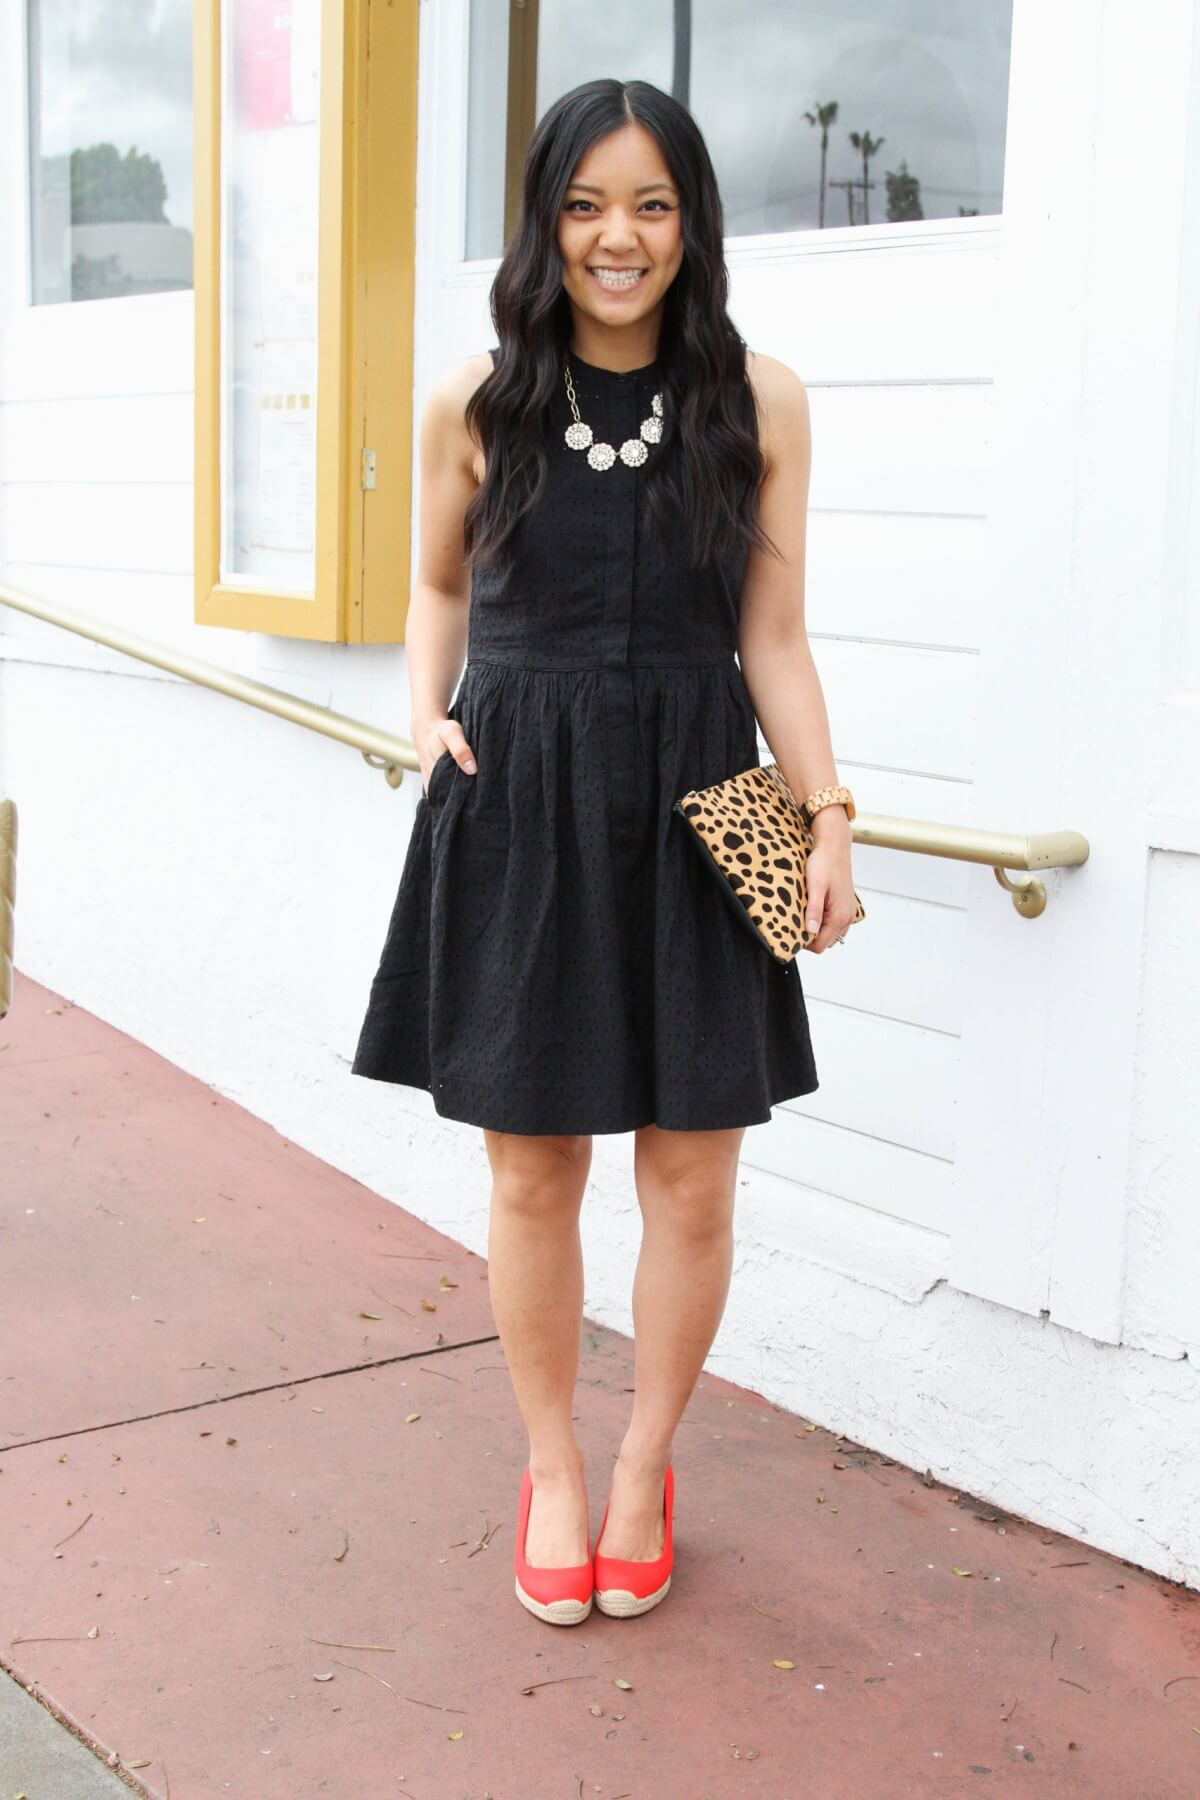 Classic Outfit black + white + pop of red: black dress + red heels + statement necklace + leopard clutch